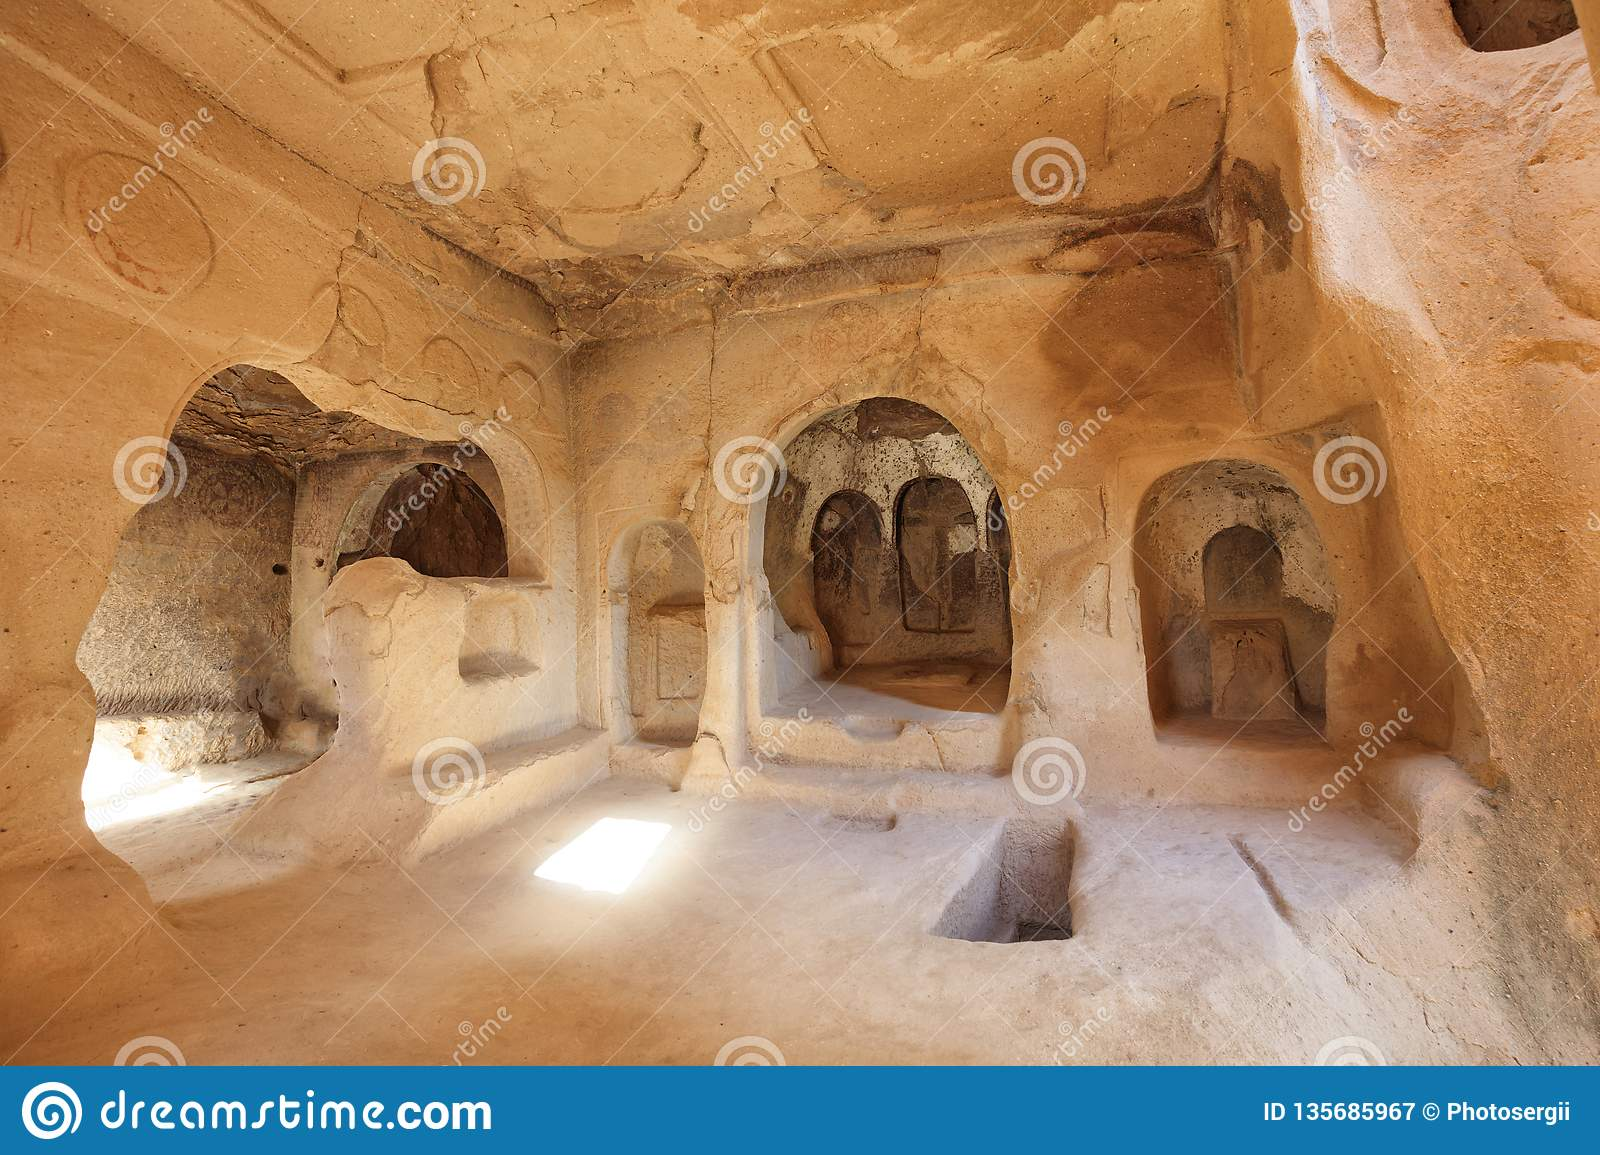 View of the ruins of the premises of the ancient church in the old cave sandstones in the valleys of Cappadocia